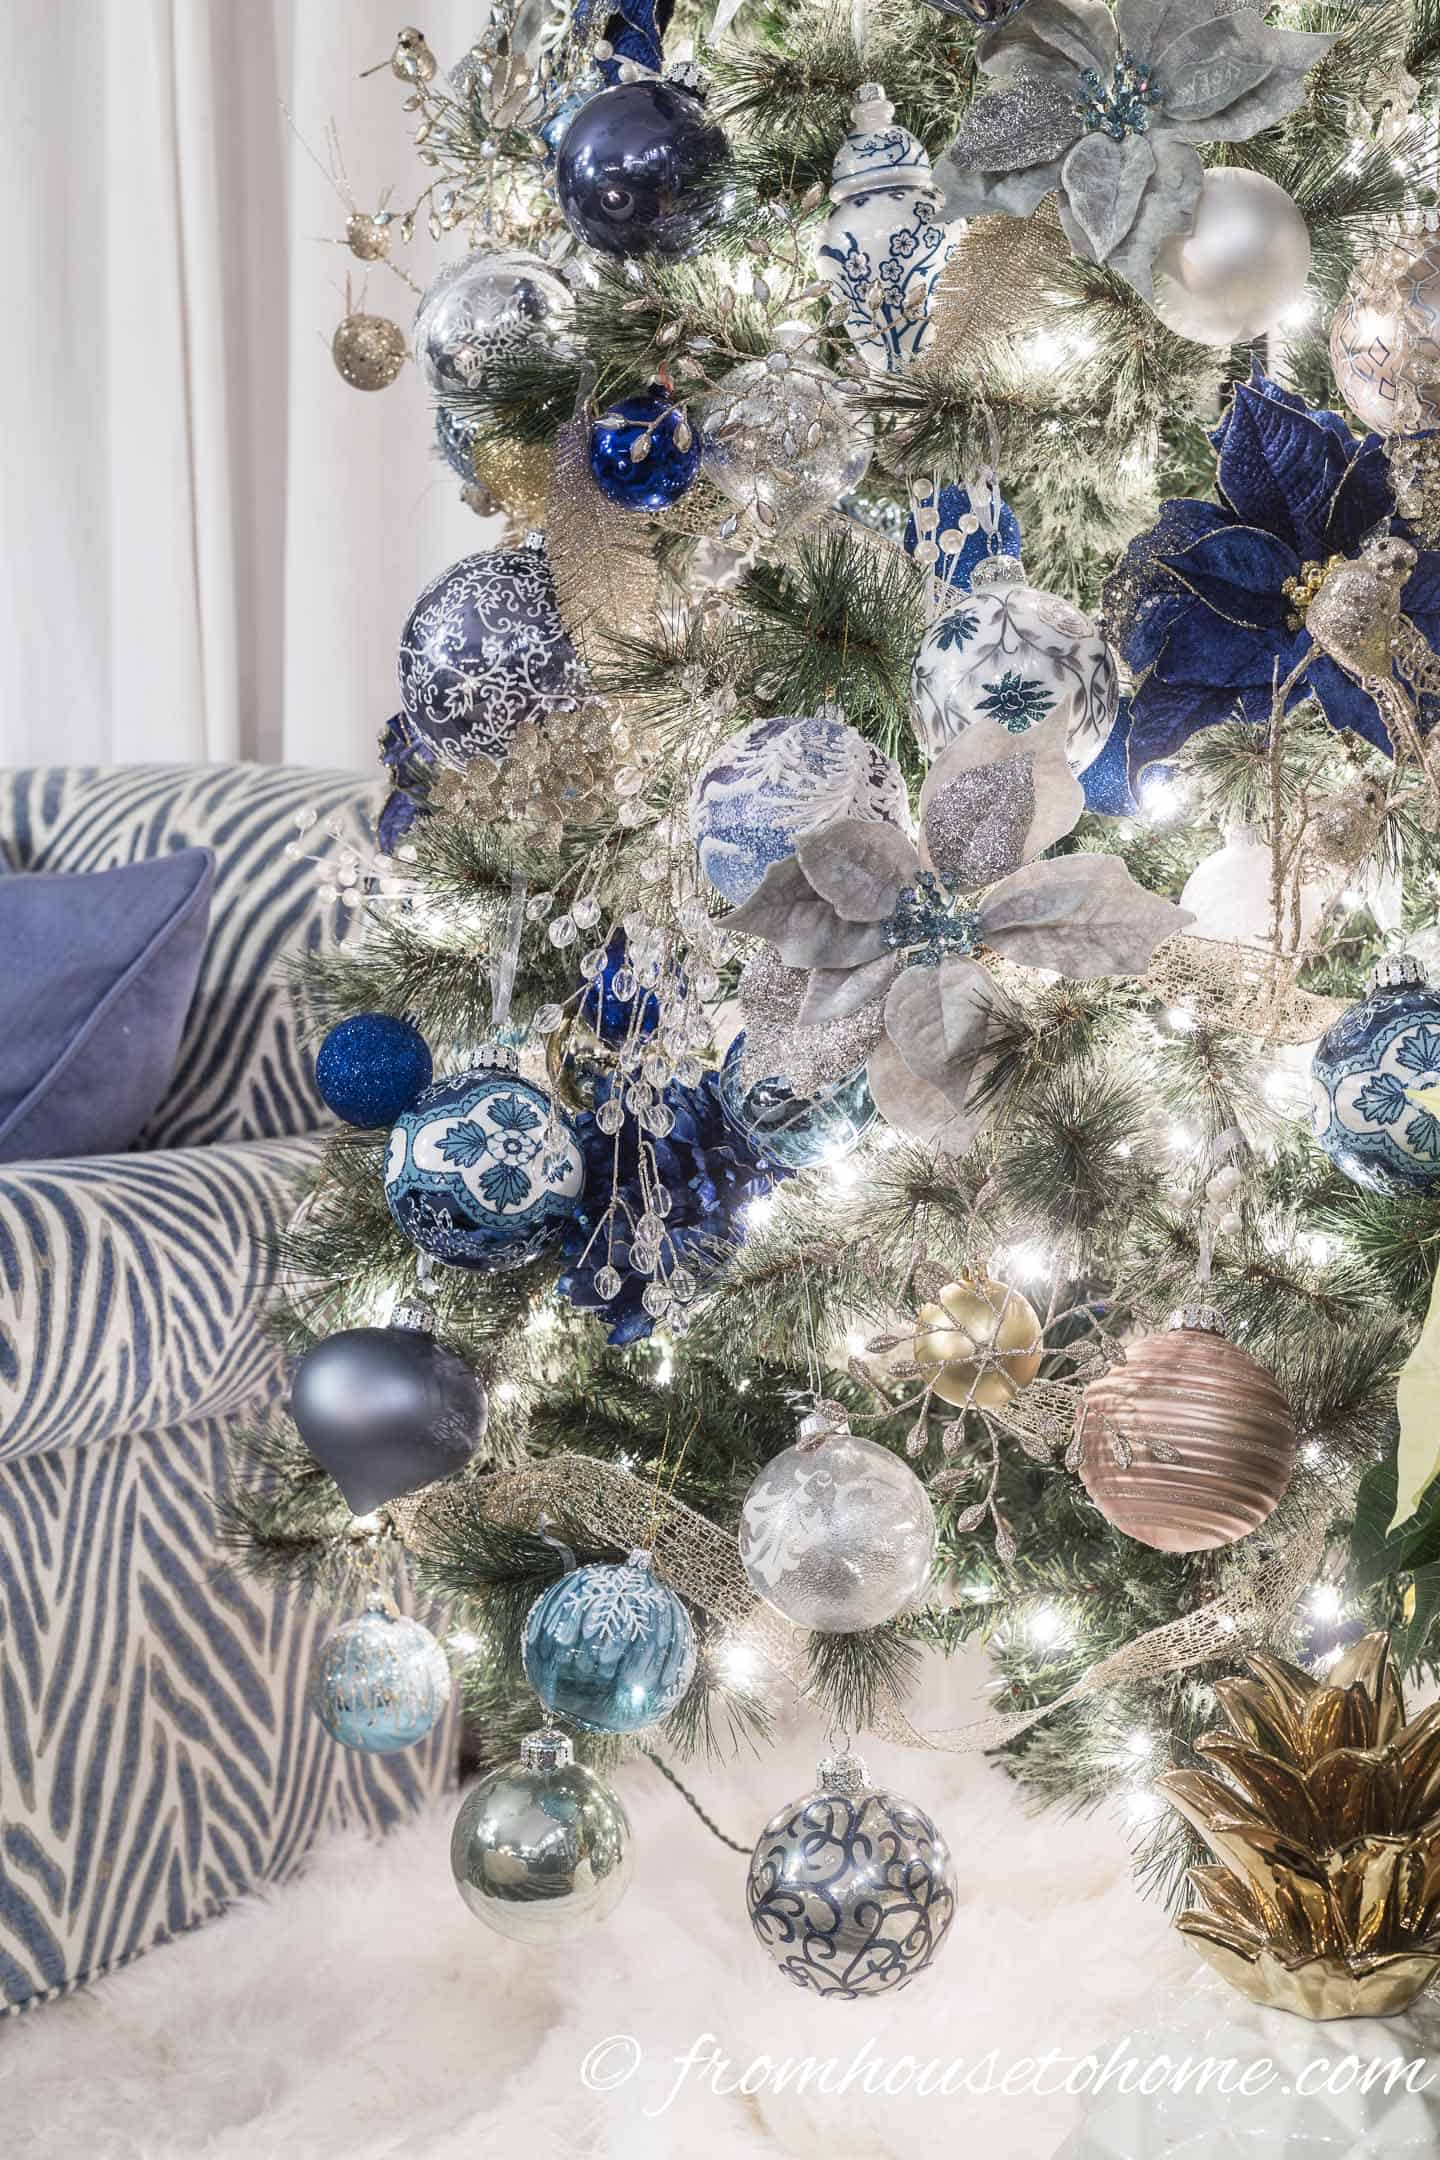 White faux fur tree skirt under a blue and white Christmas tree